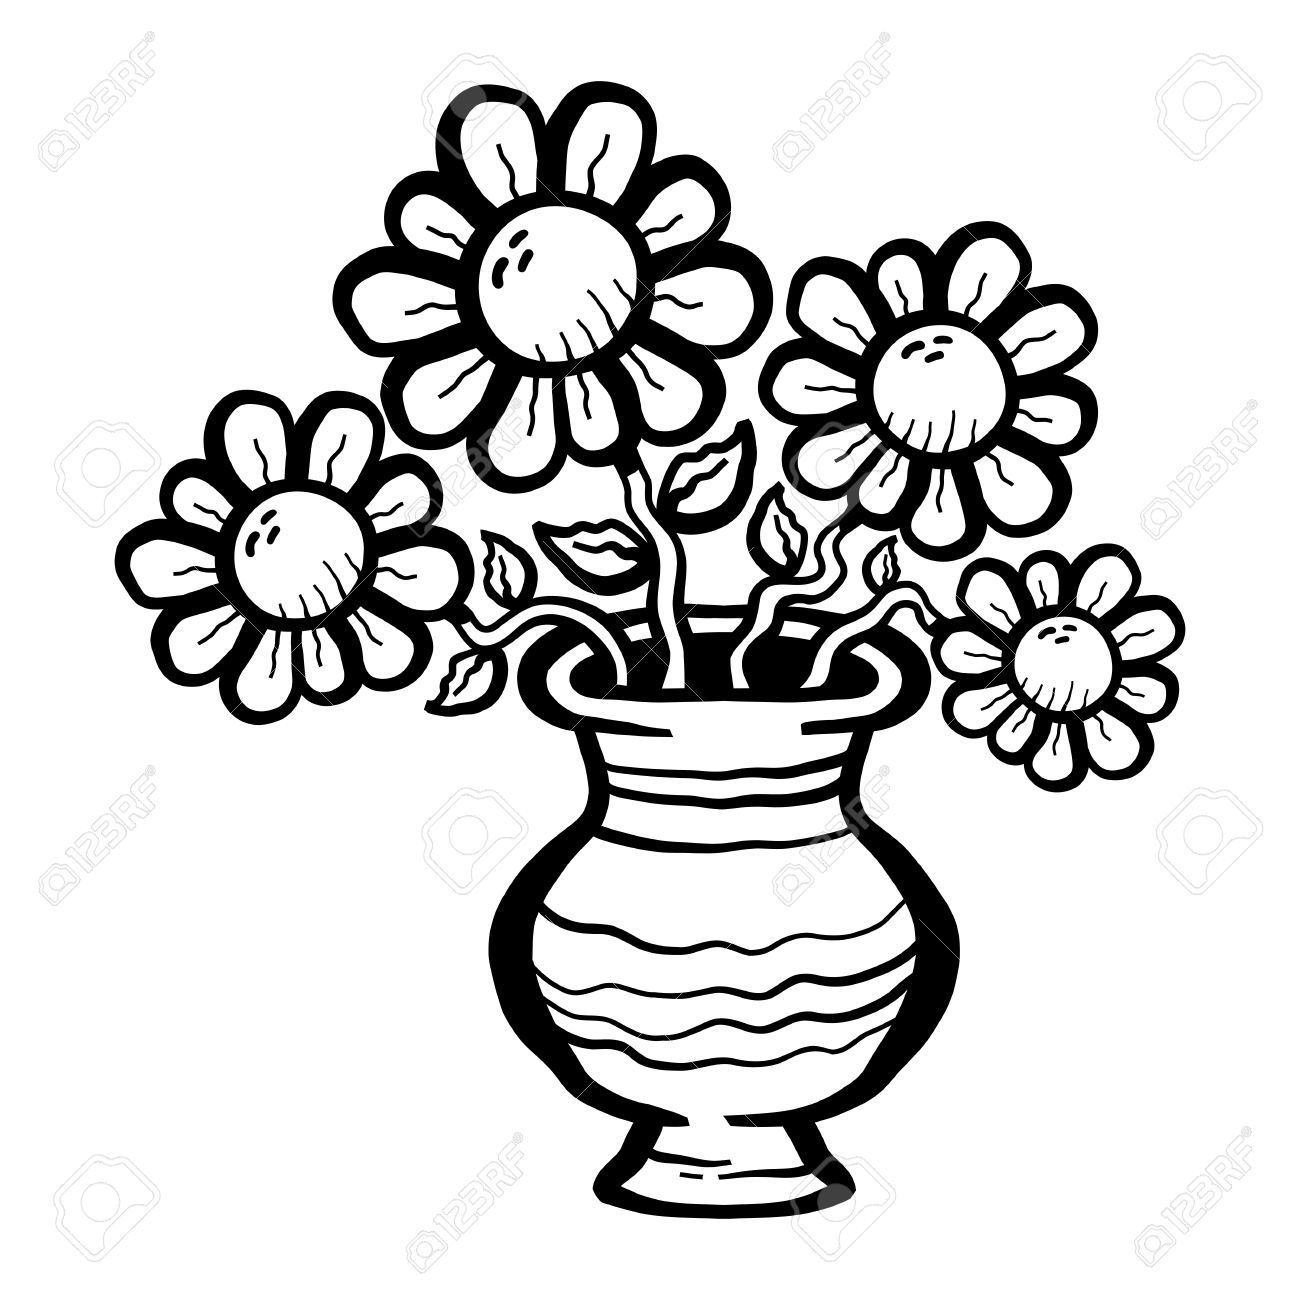 Clipart black and white flowers in a vase graphic black and white library Flower vase clipart black and white Fresh Flower Vase Clipart Black ... graphic black and white library